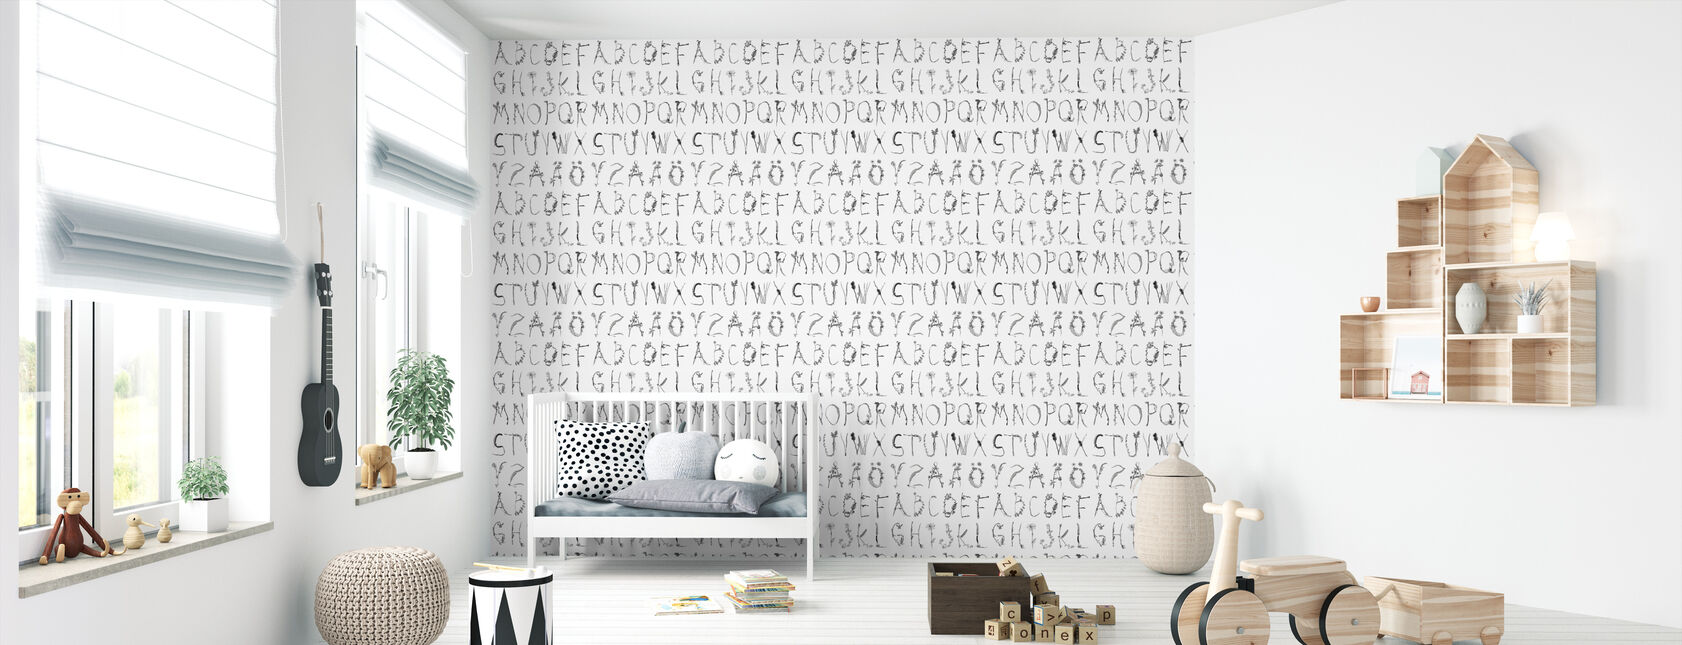 ABCedarian - Wallpaper - Nursery